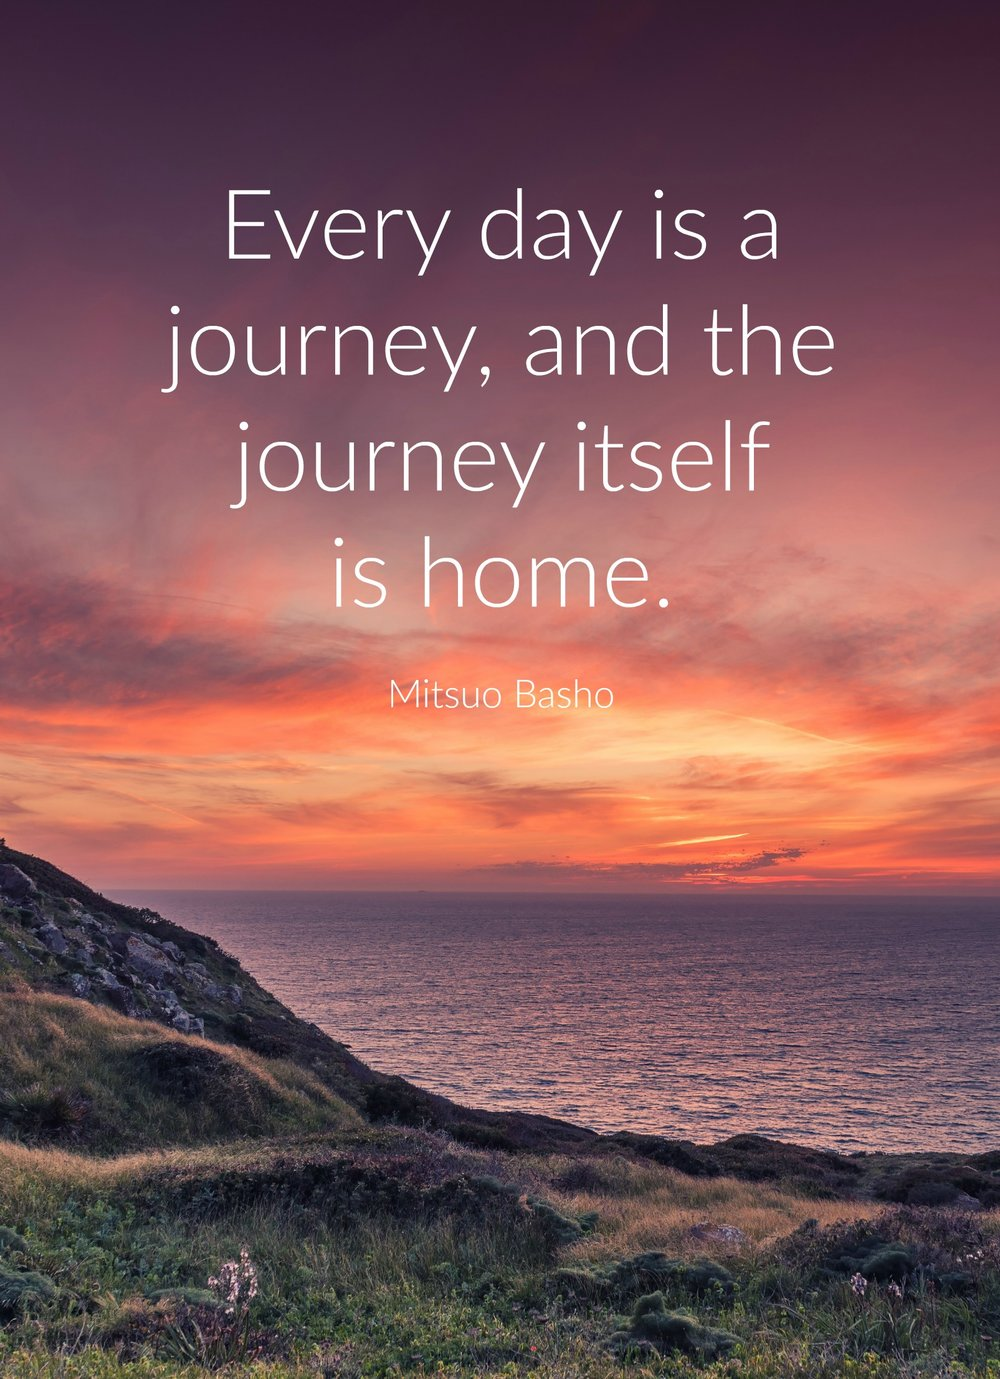 Every day is a journey, and the journey itself is home. Mitsuo Basho. Via www.circleofdaydreams.com